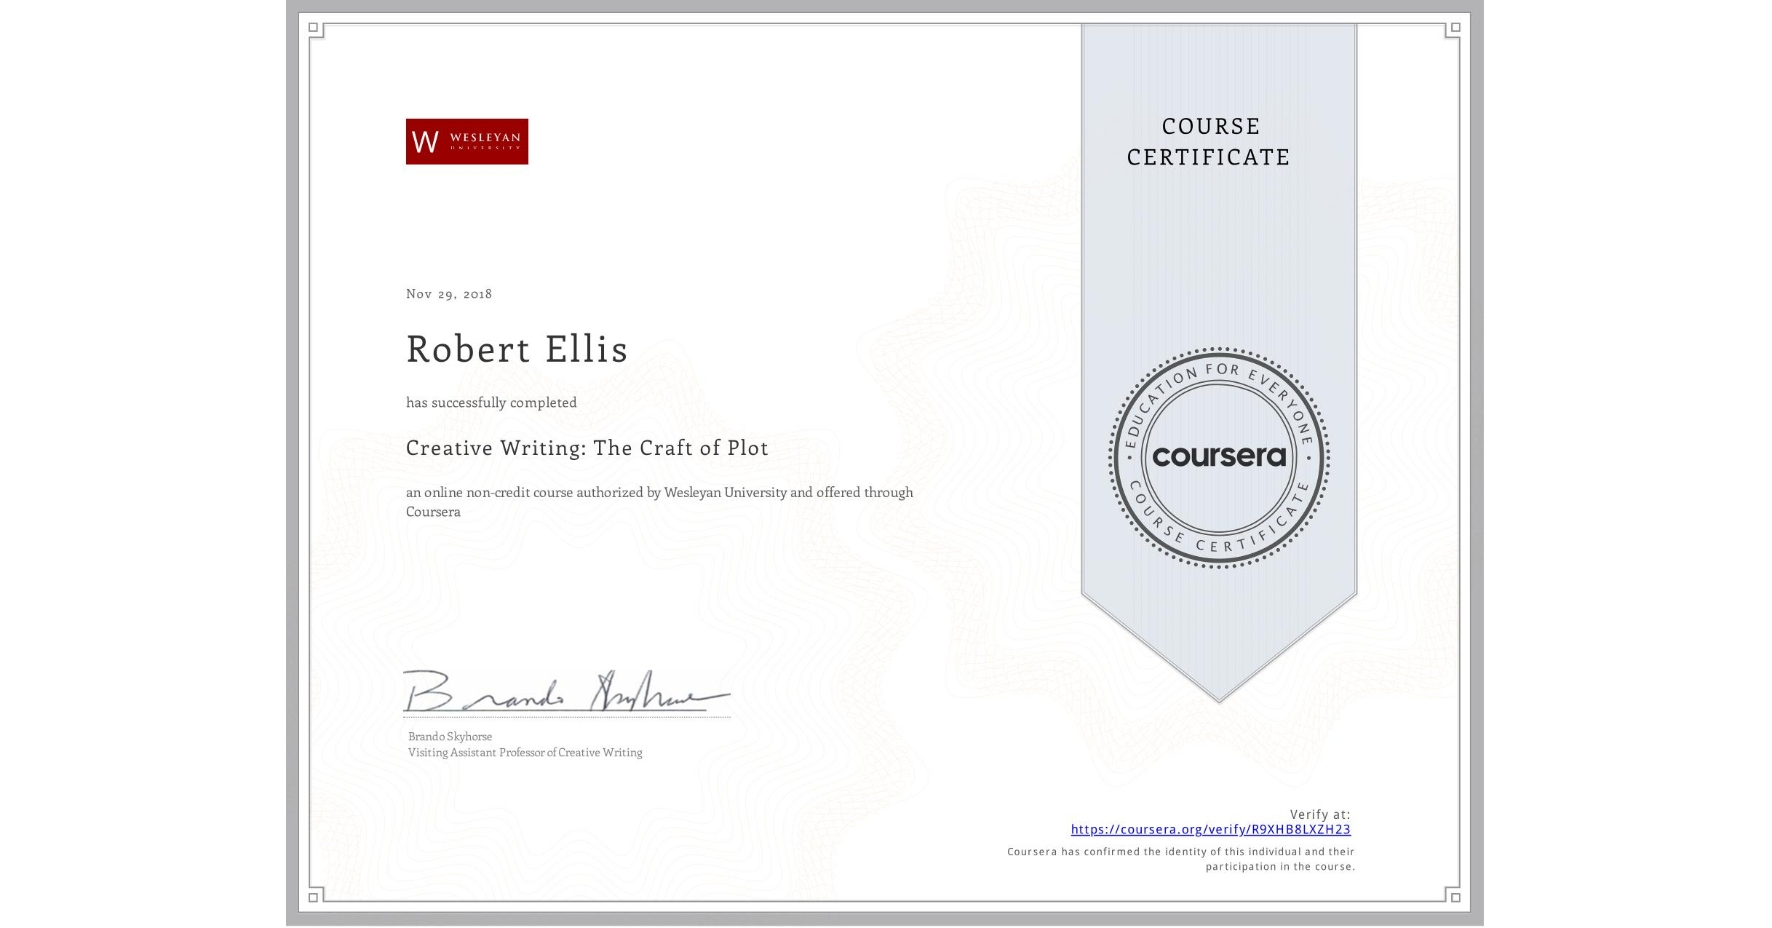 View certificate for Robert Ellis, Creative Writing: The Craft of Plot, an online non-credit course authorized by Wesleyan University and offered through Coursera